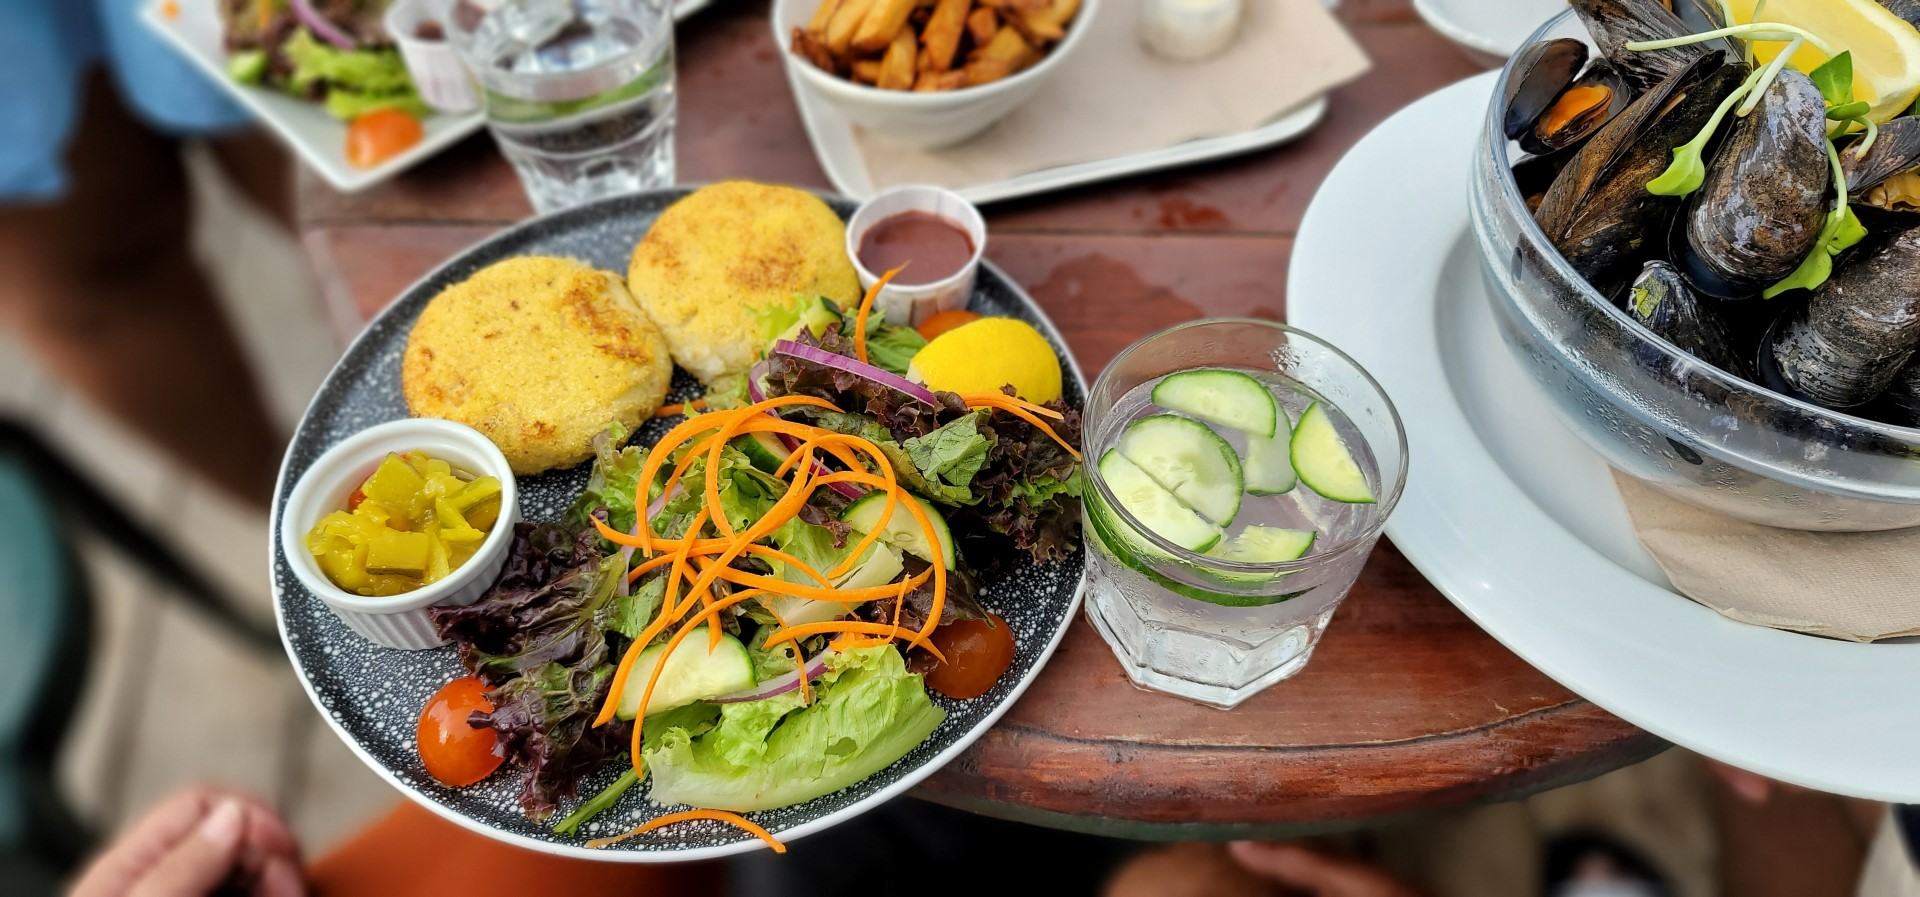 crab cakes and salad on a table